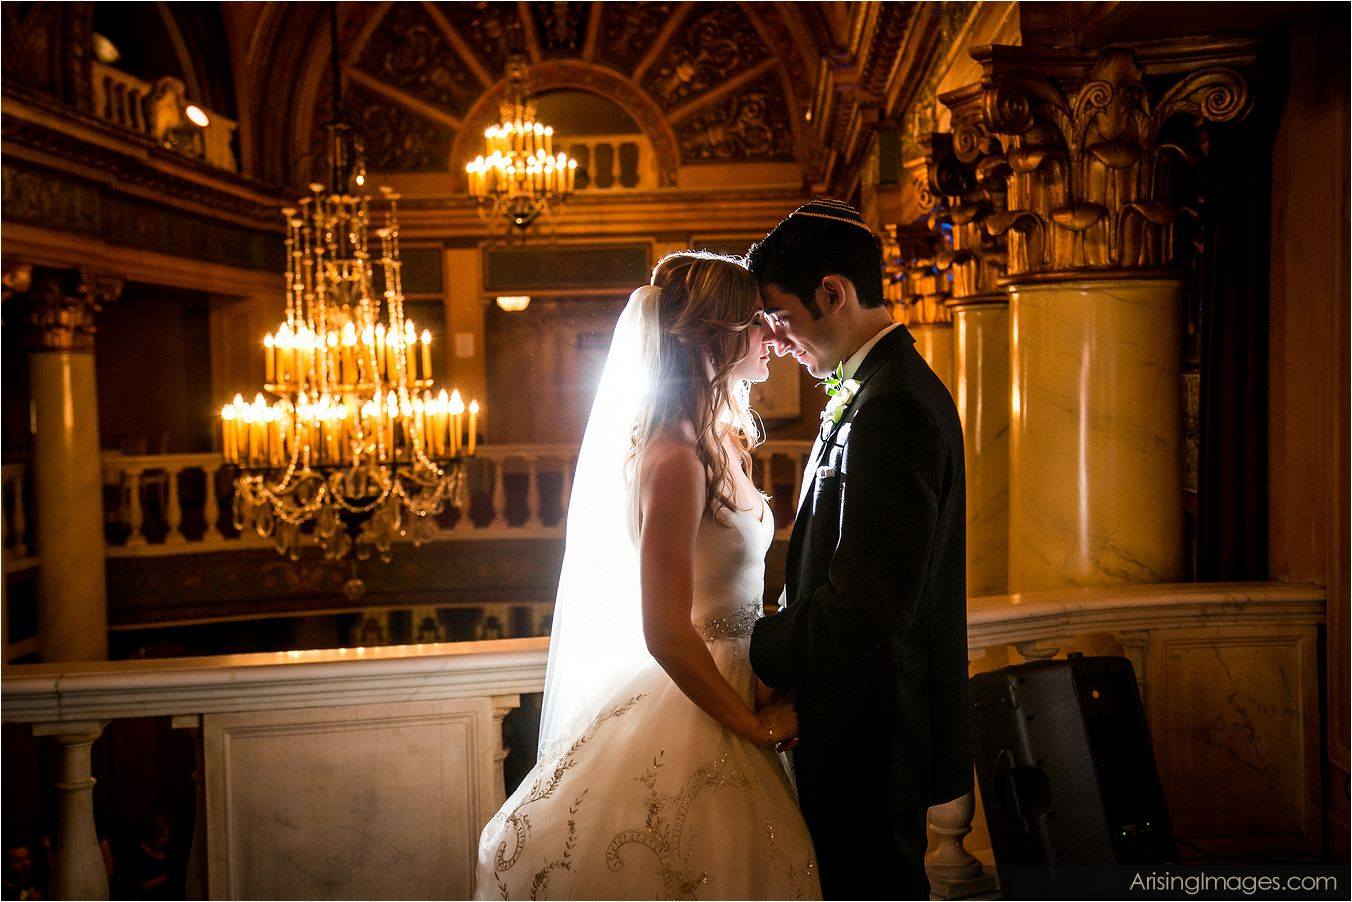 What to look for when hiring a Michigan wedding photographer